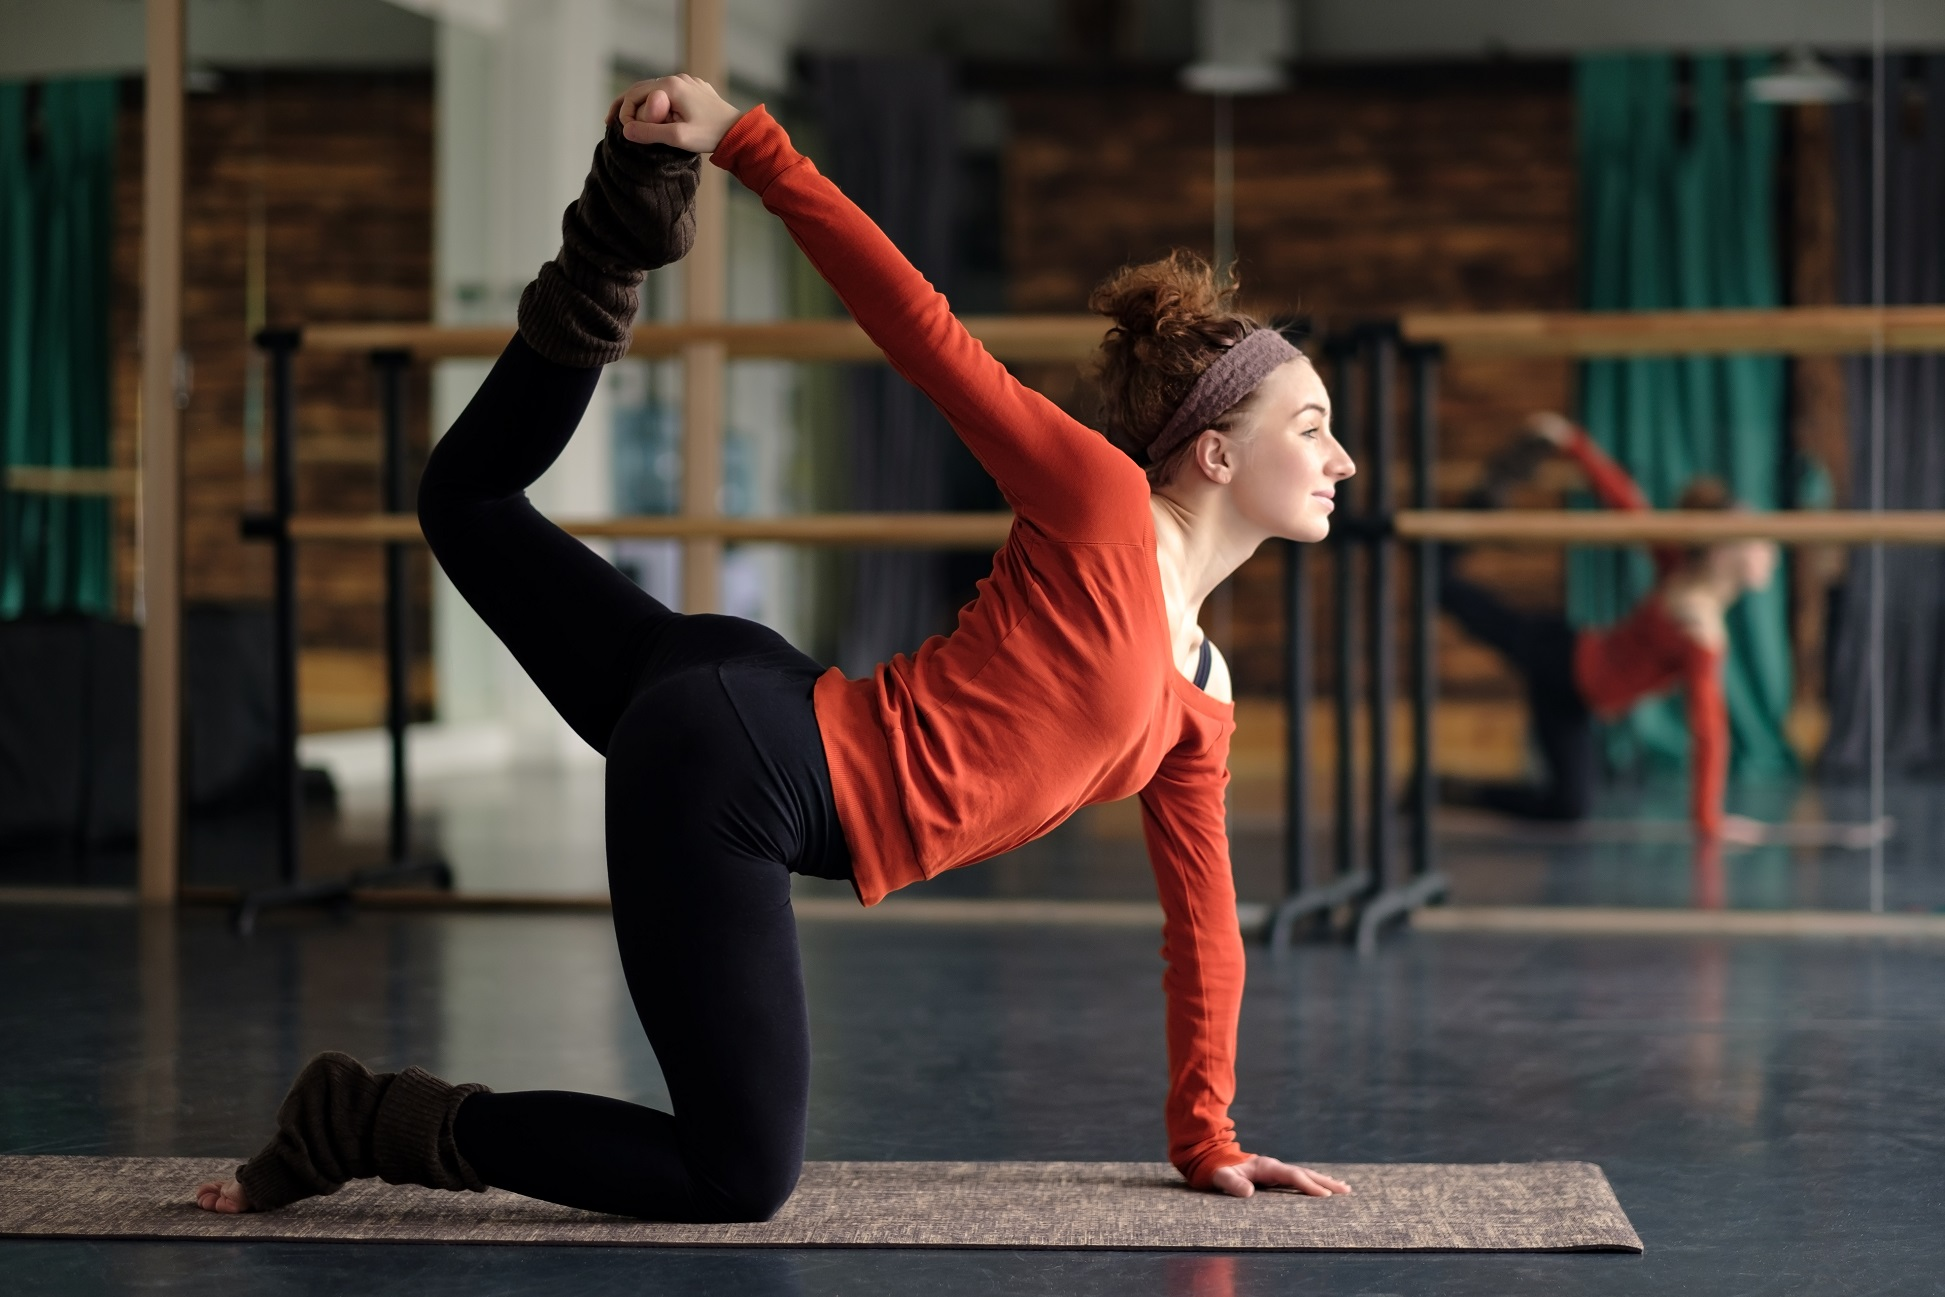 Young woman practicing yoga, stretching in Bird dog exercise, tiger pose, working out. Indoor full length